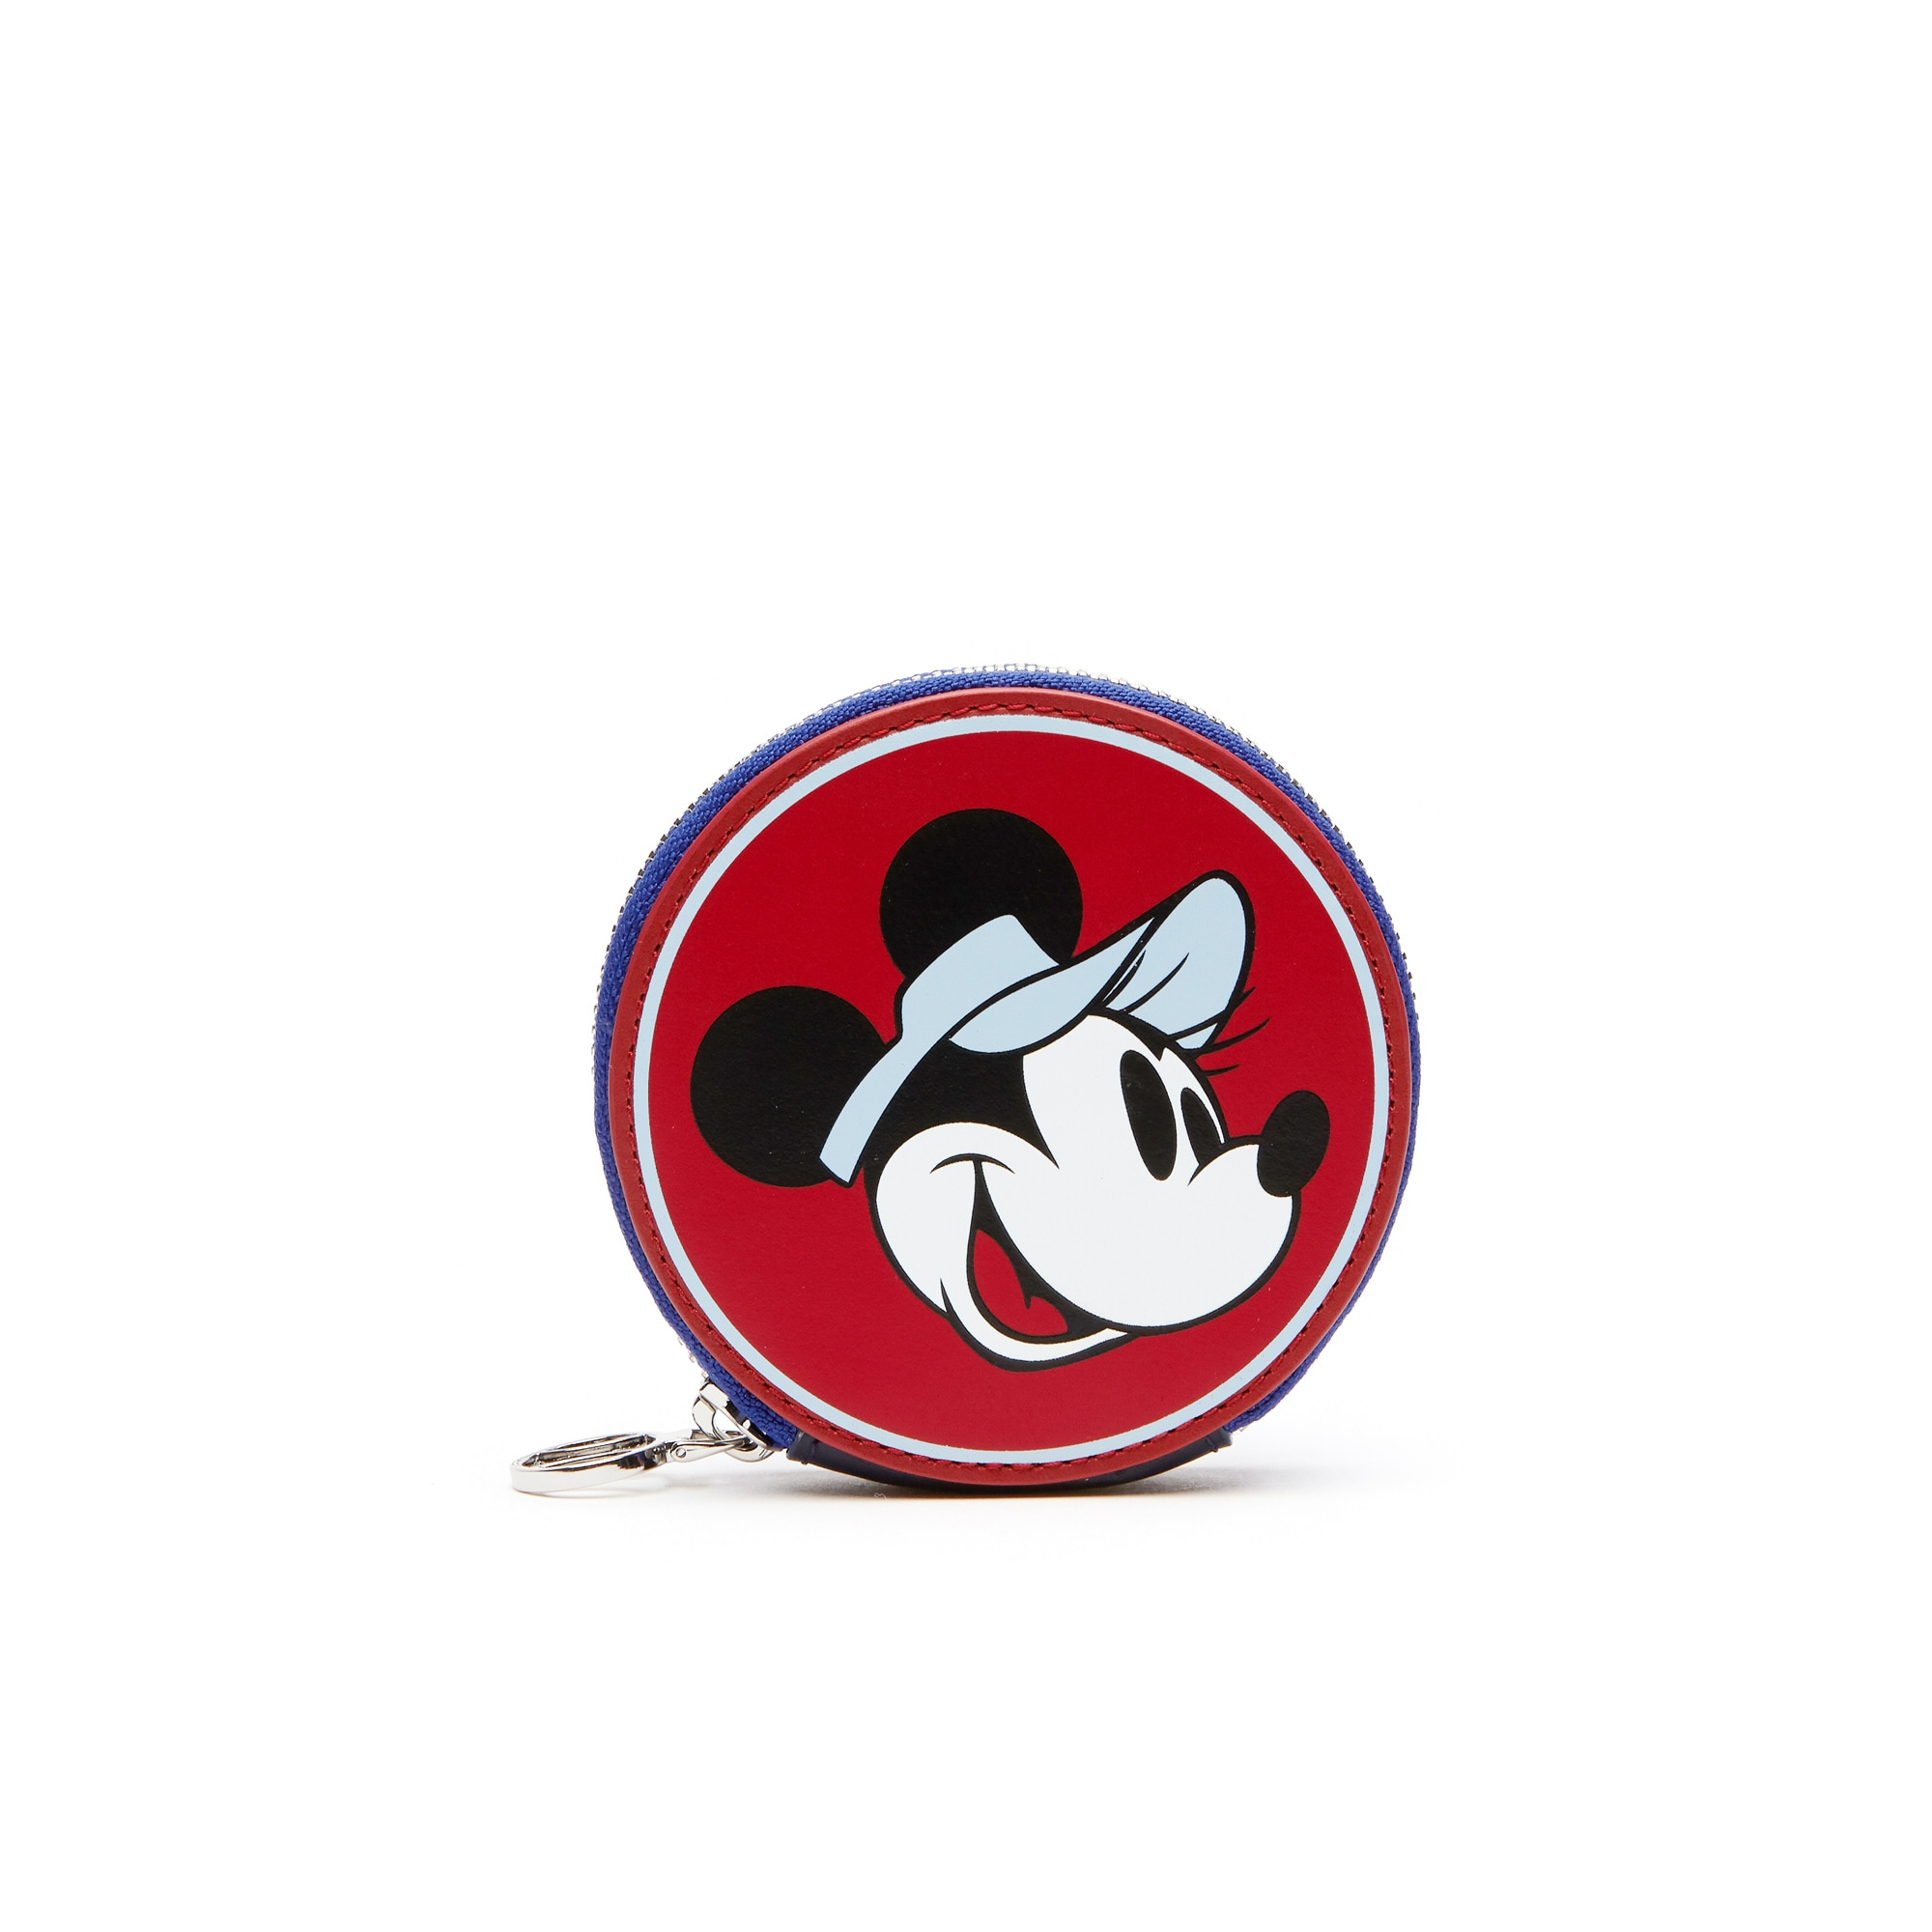 Portamonete in pelle con stampa Minnie Disney Holiday Collector da donna